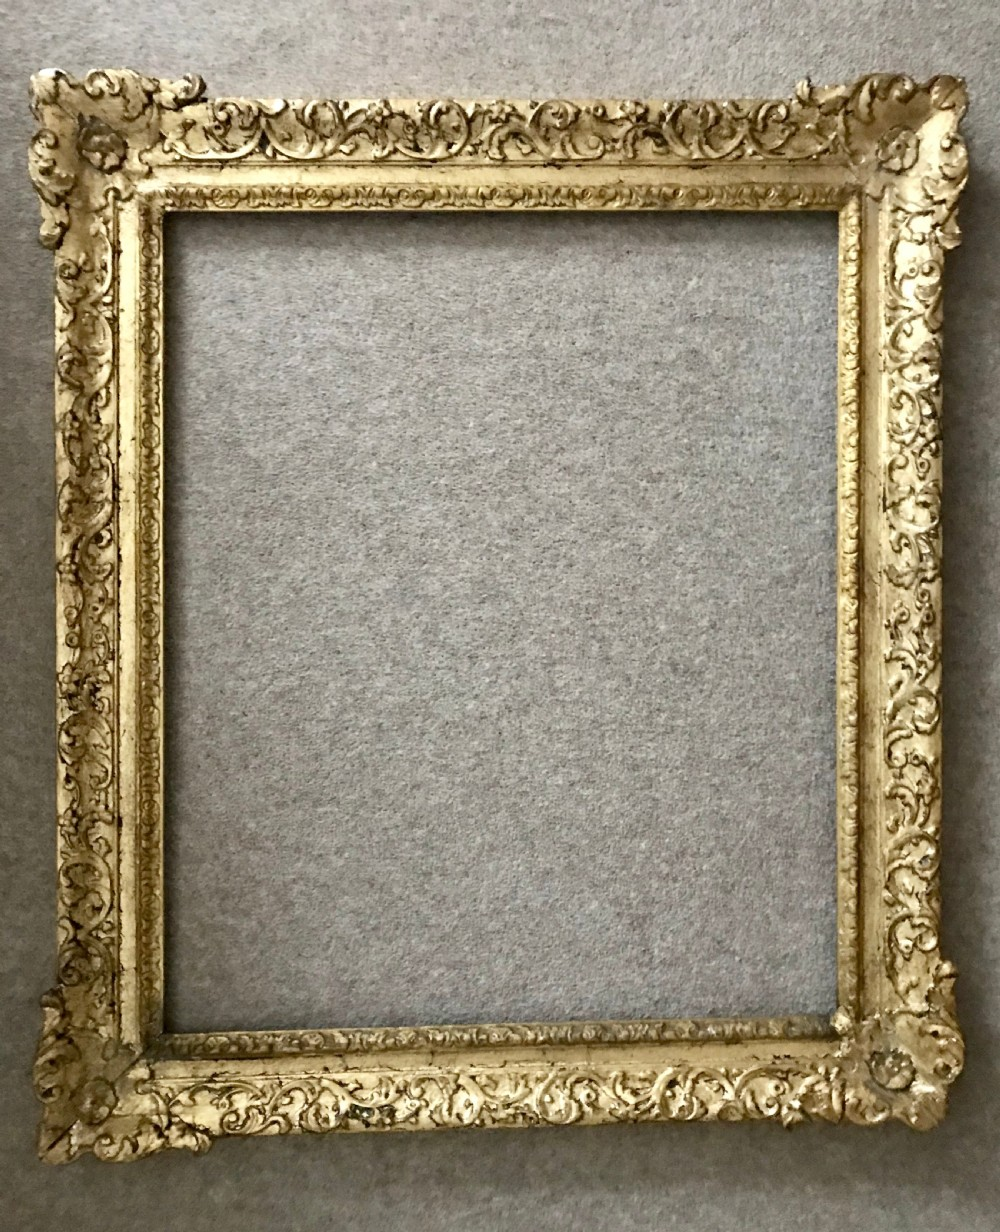 carved wood and gilt frame c1750